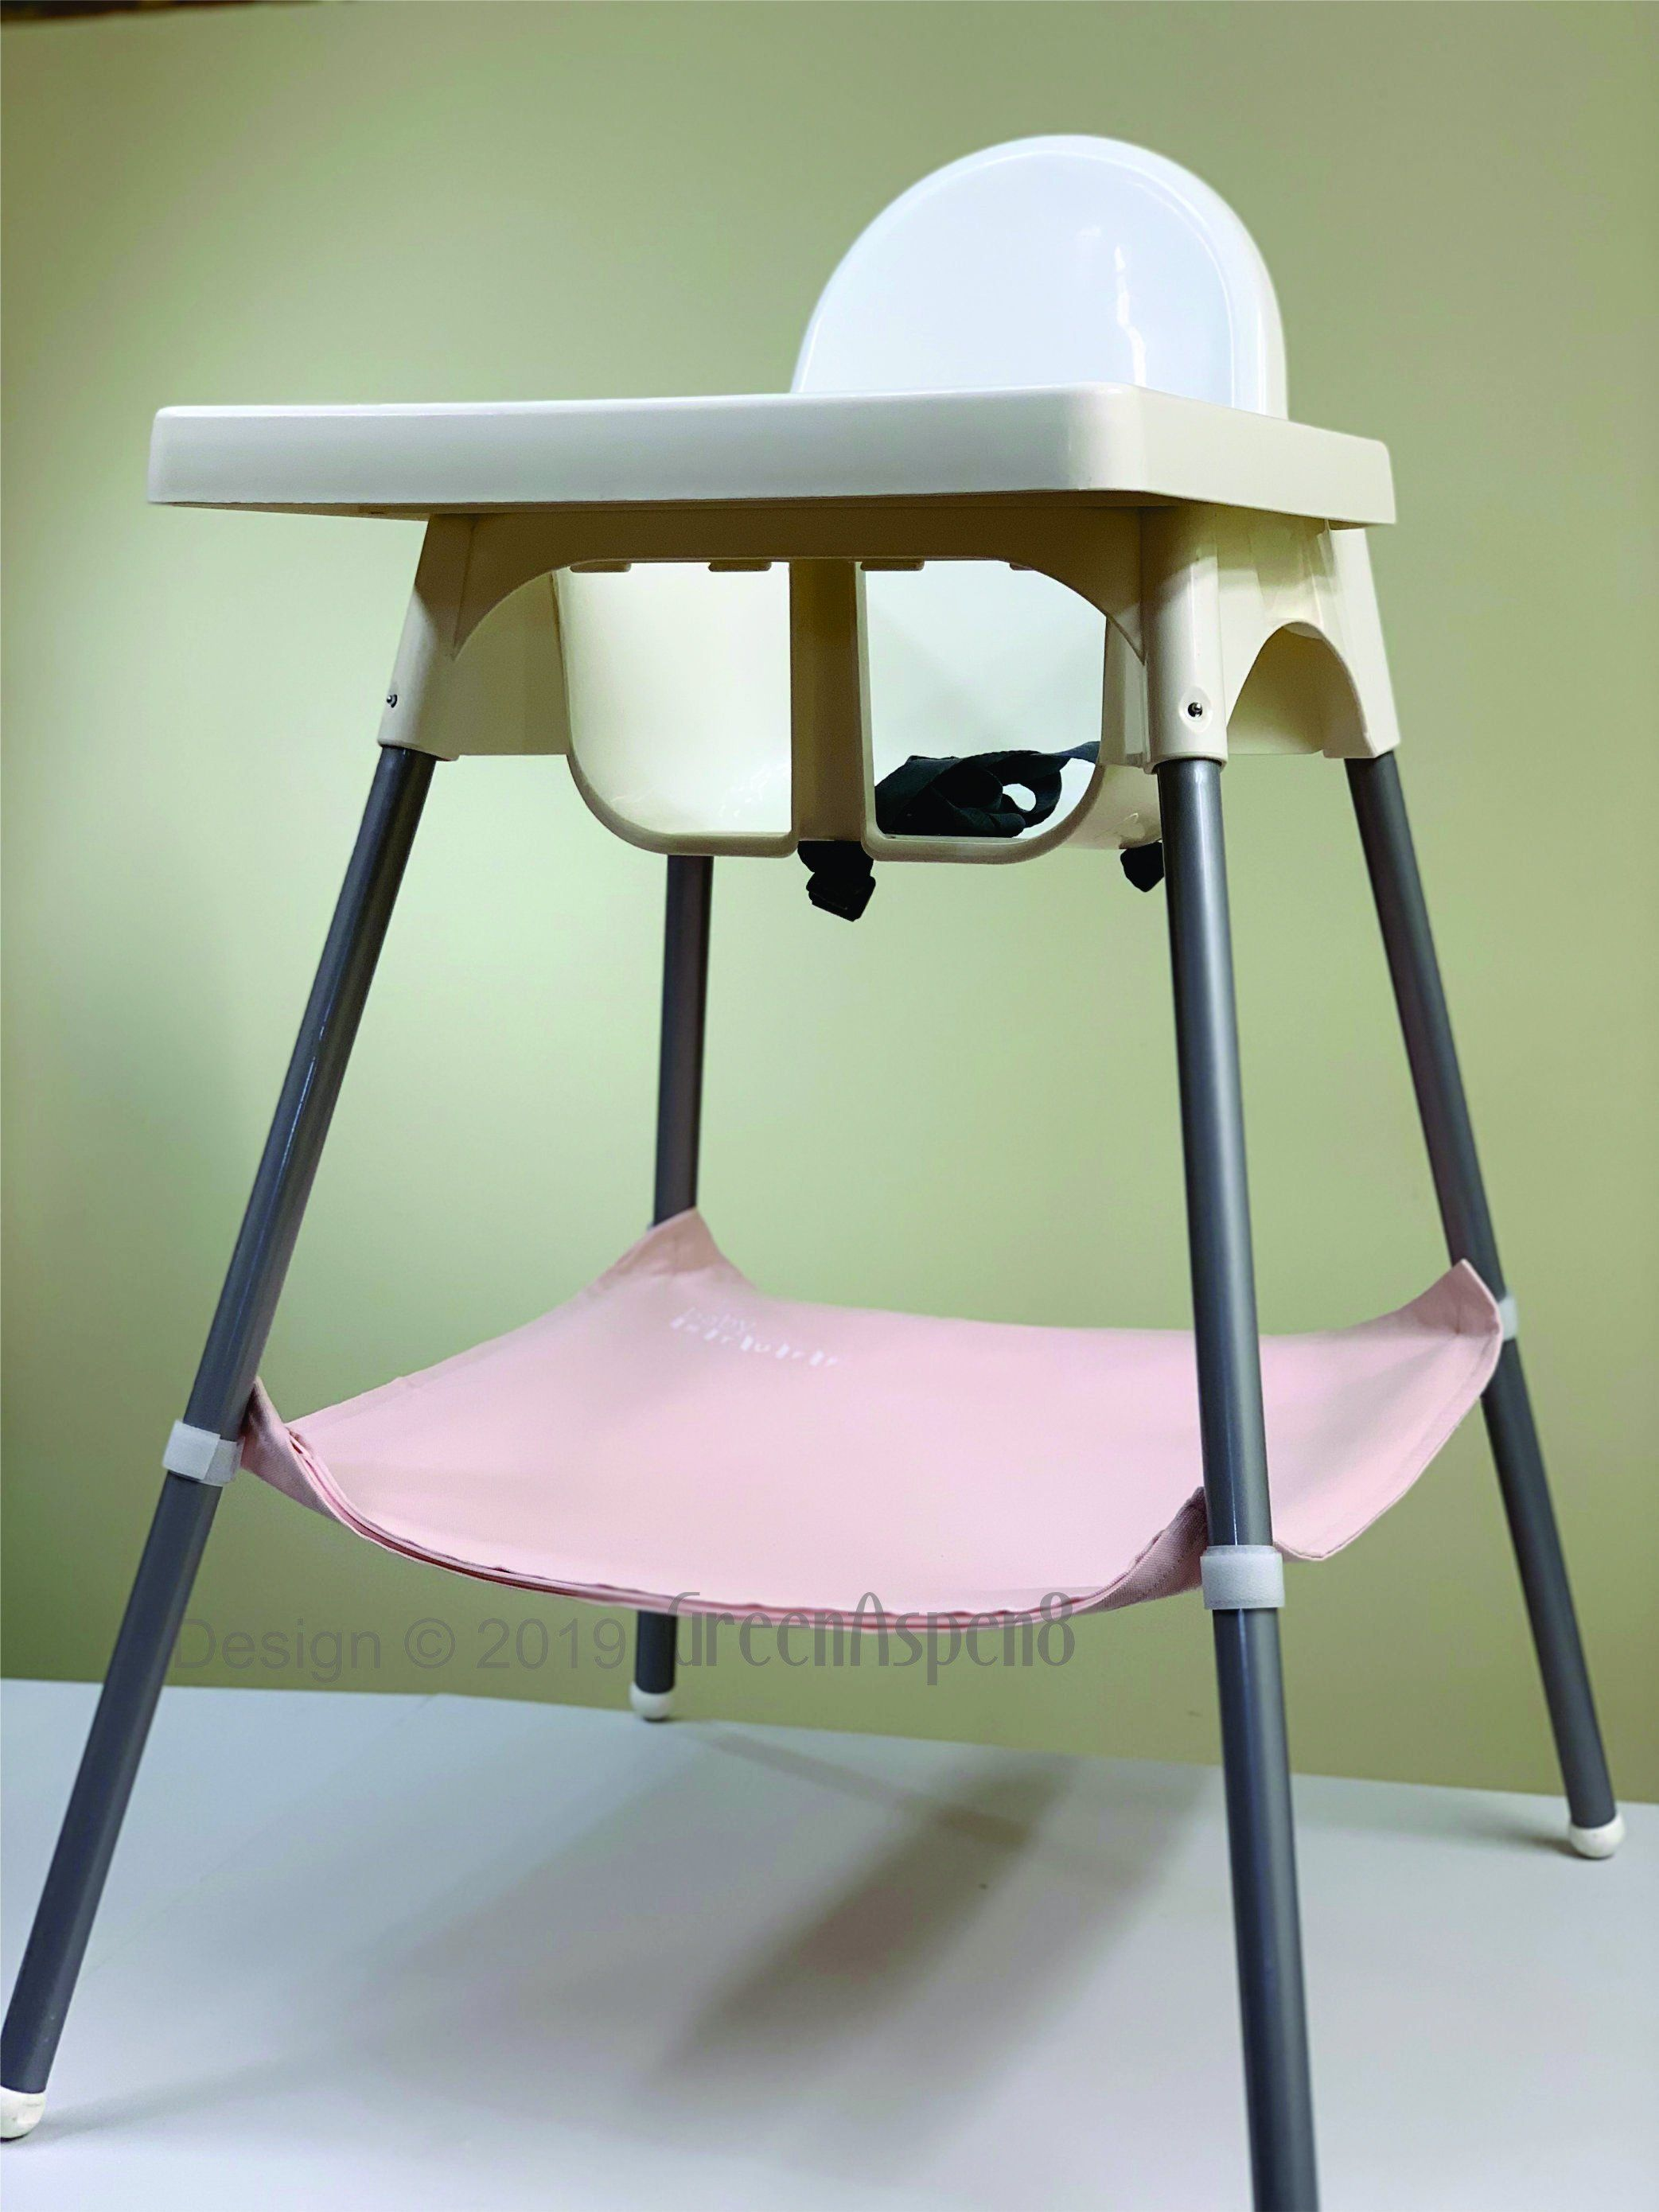 Antilop high chair by Iva on Antilop high chair High